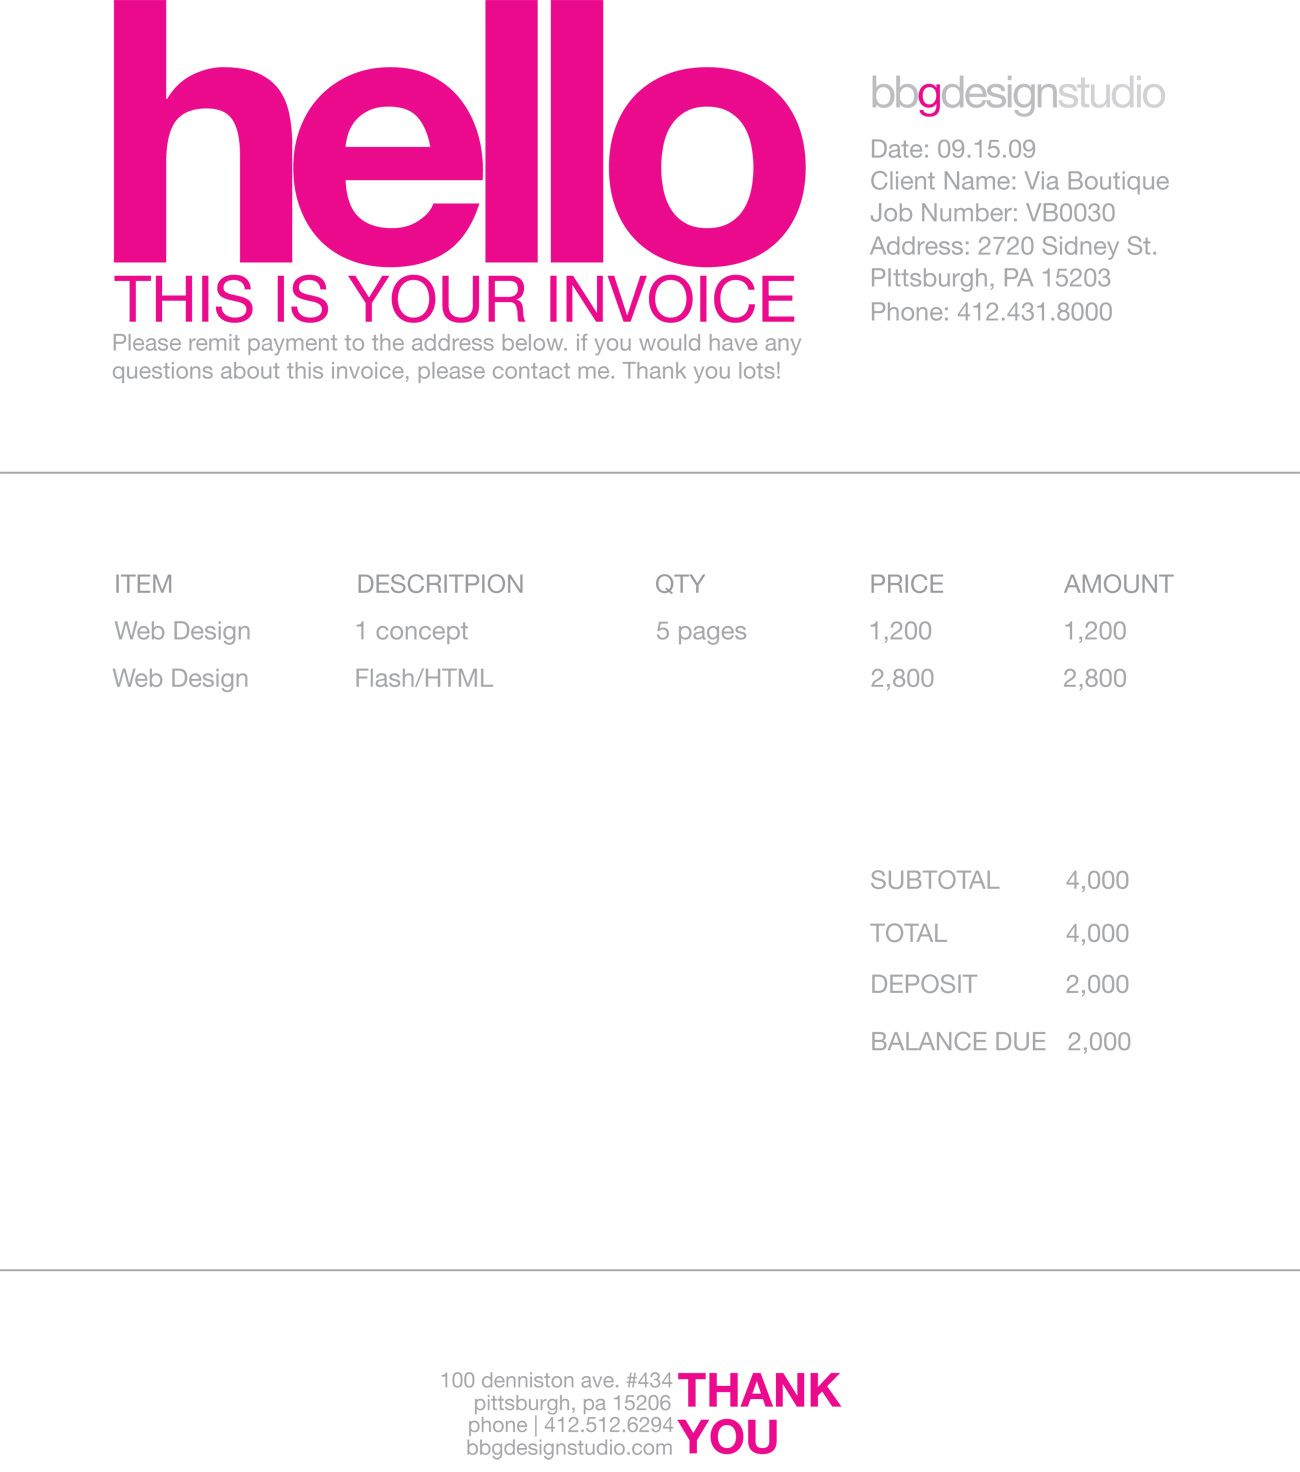 Imagerackus  Pleasant  Images About Invoice Design On Pinterest With Inspiring Cloud Invoicing Besides Invoice Software Free Furthermore Invoice Template Word Download Free With Nice Sliq Invoicing Also Free Business Invoice Template In Addition Sample Contractor Invoice And Free Templates For Invoices As Well As Make An Invoice Online Additionally Itemized Invoice Template From Pinterestcom With Imagerackus  Inspiring  Images About Invoice Design On Pinterest With Nice Cloud Invoicing Besides Invoice Software Free Furthermore Invoice Template Word Download Free And Pleasant Sliq Invoicing Also Free Business Invoice Template In Addition Sample Contractor Invoice From Pinterestcom